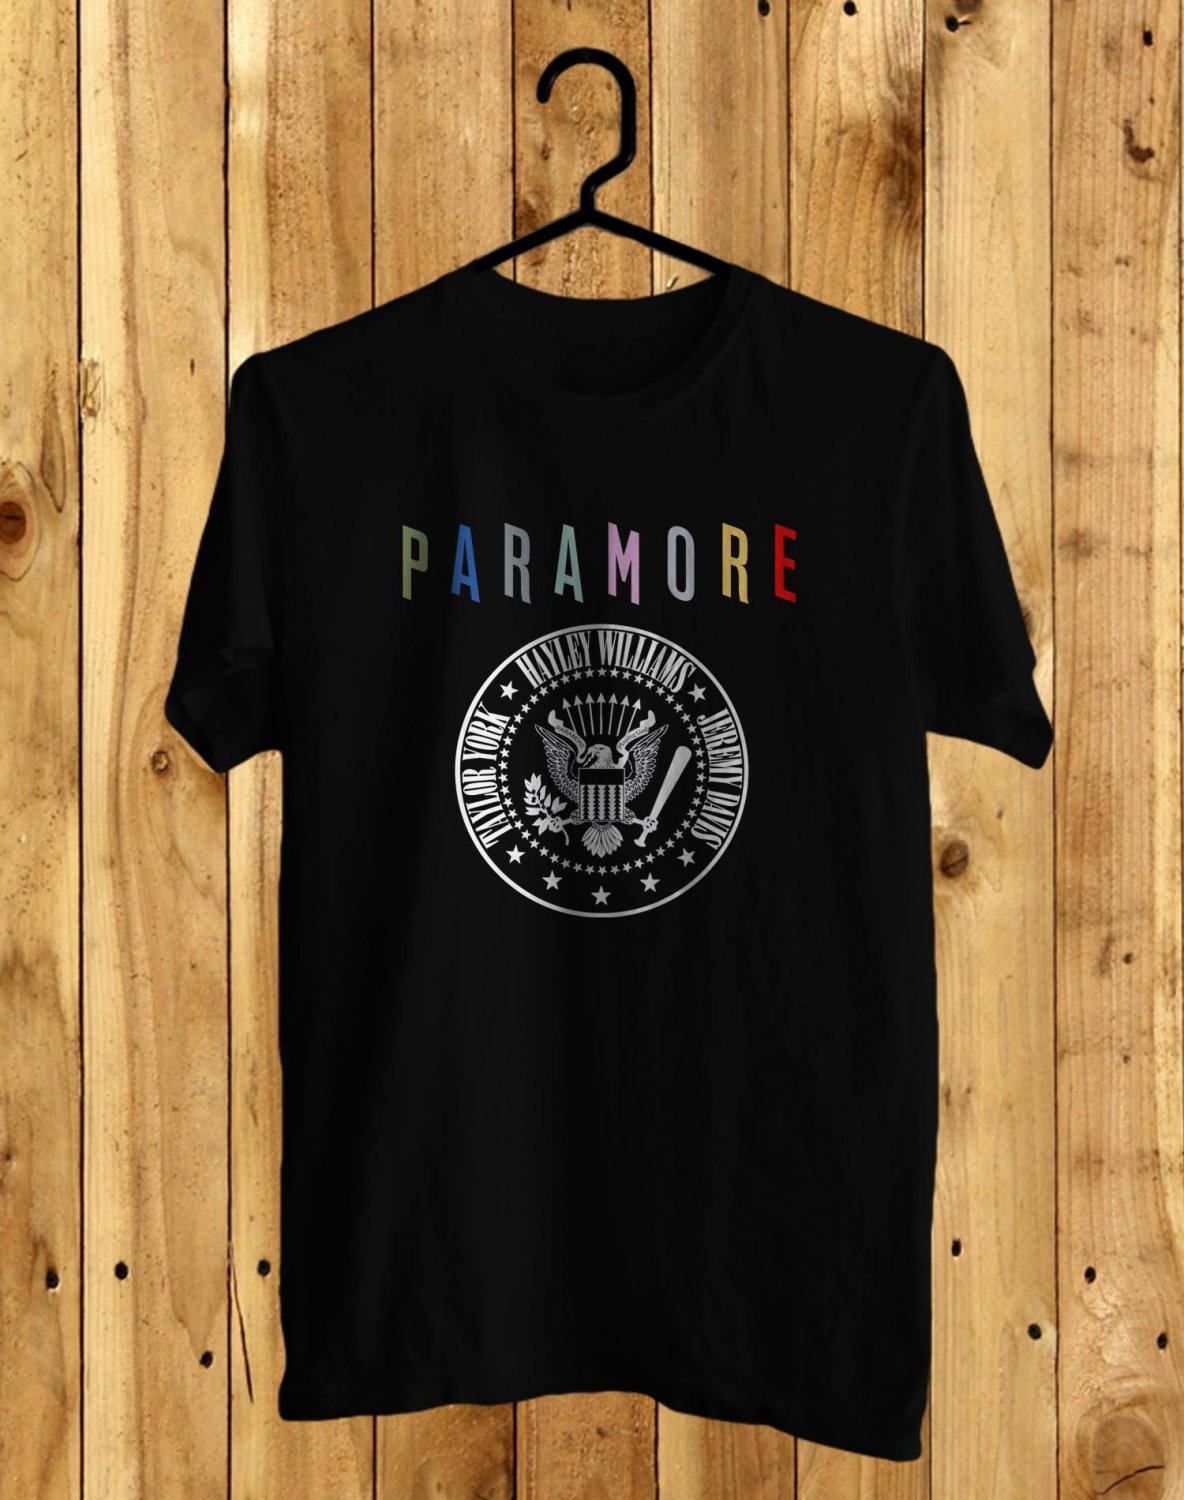 Paramore Tour 2017 Black Tee's Front Side by Complexart